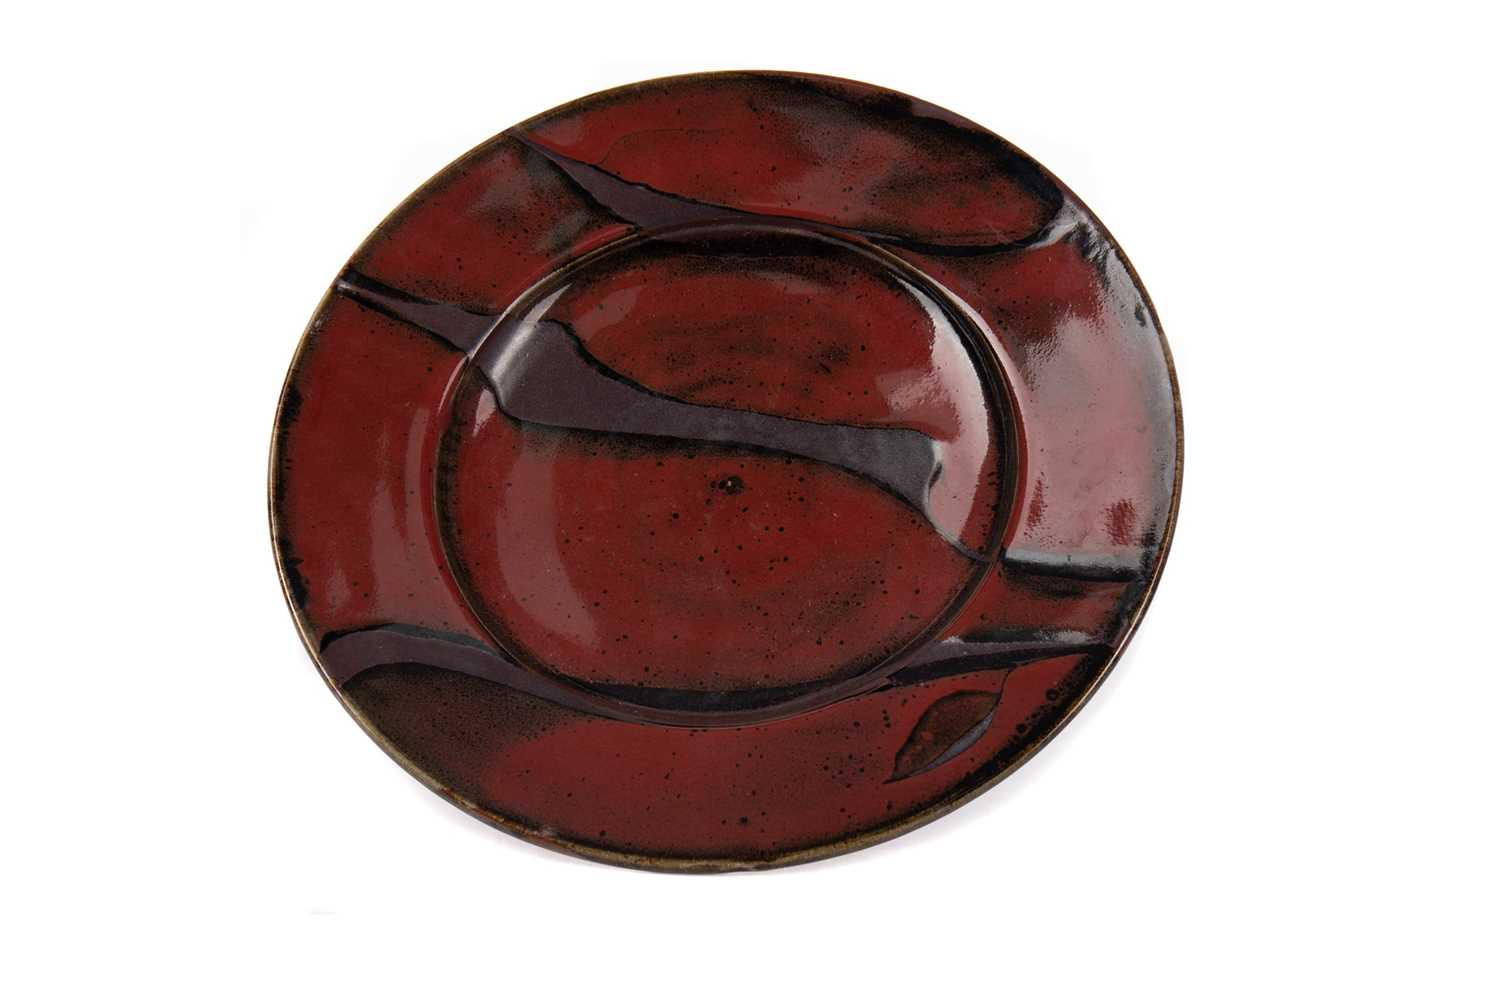 Lot 1031 - DAVID FRITH, BROOKHOUSE STUDIO POTTERY PLATE